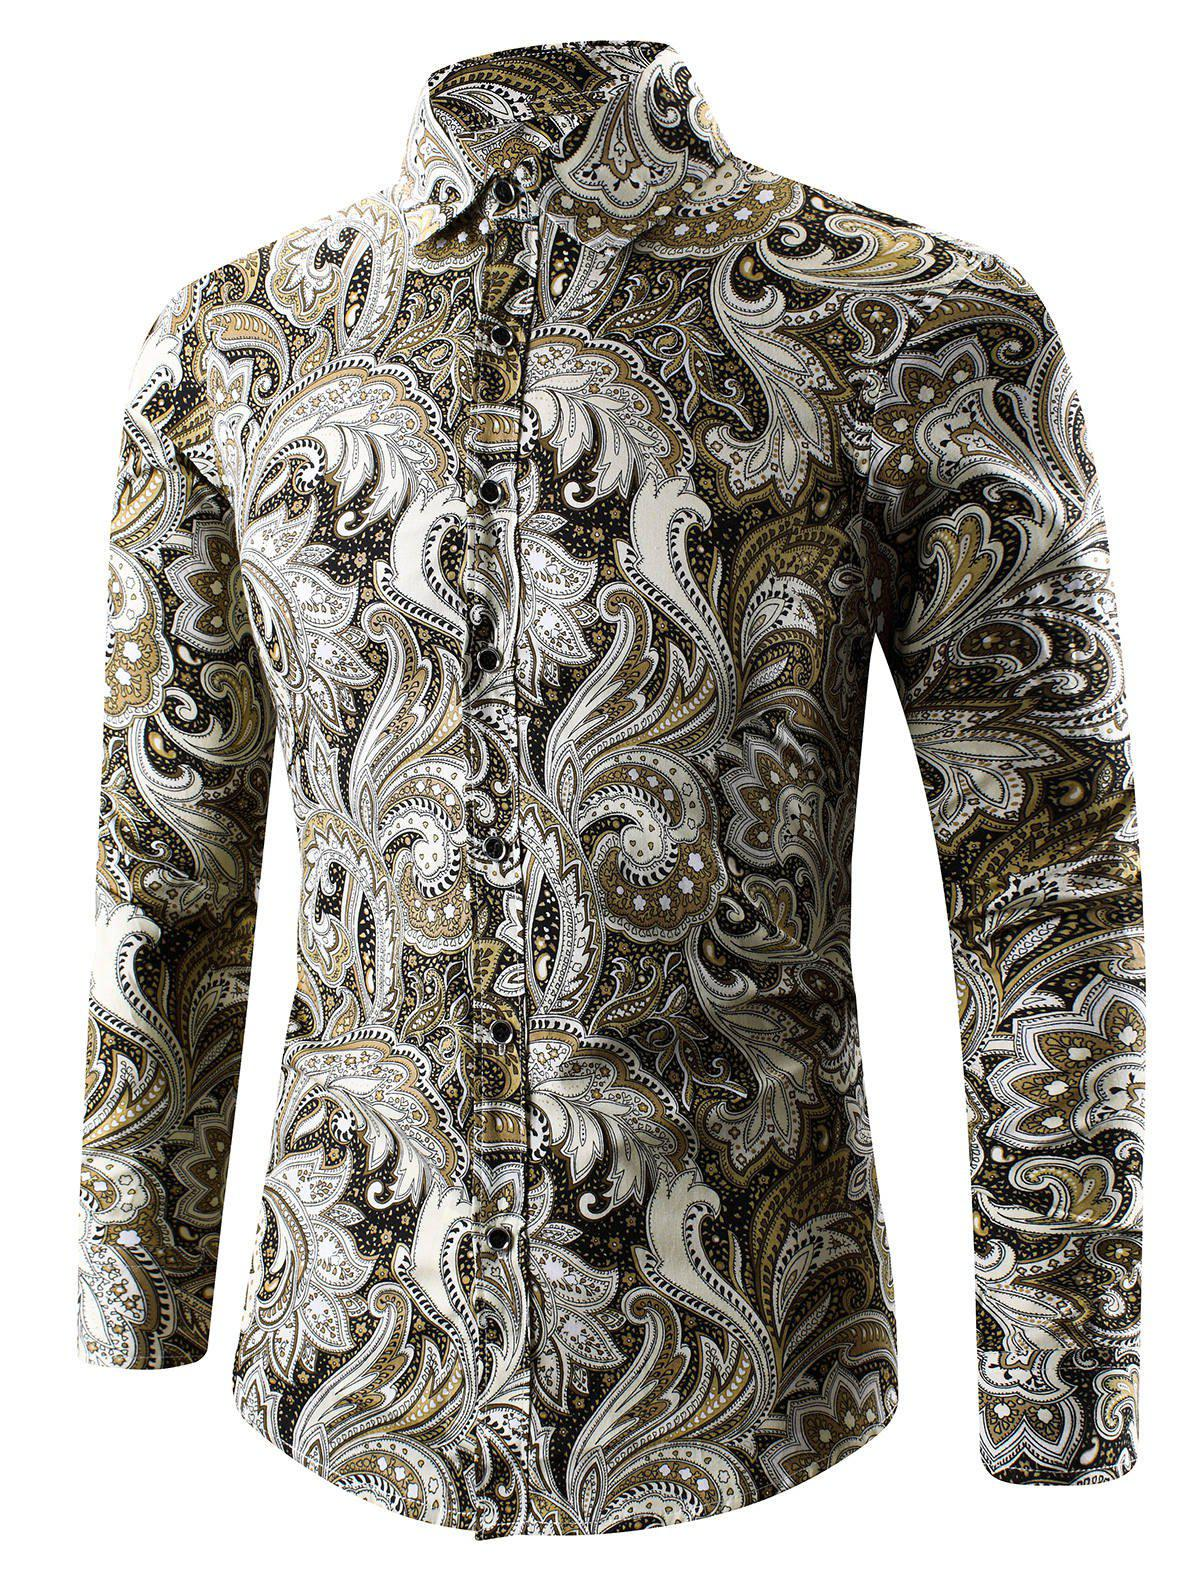 Turn-Down Collar Long Sleeve Paisley ShirtMEN<br><br>Size: M; Color: YELLOW; Shirts Type: Casual Shirts; Material: Cotton,Polyester; Sleeve Length: Full; Collar: Turn-down Collar; Weight: 0.1990kg; Package Contents: 1 x Shirt;